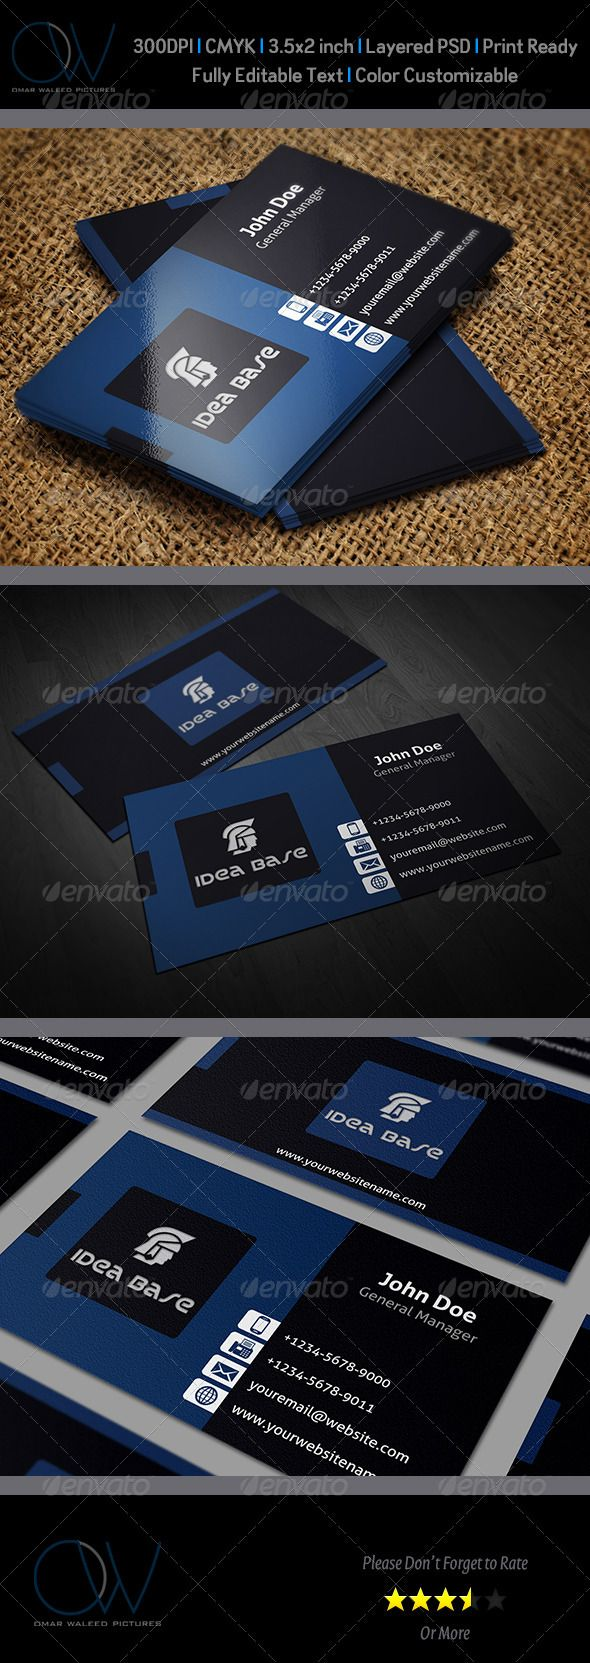 Best 25 classic business card ideas on pinterest modern classic business card spiritdancerdesigns Images